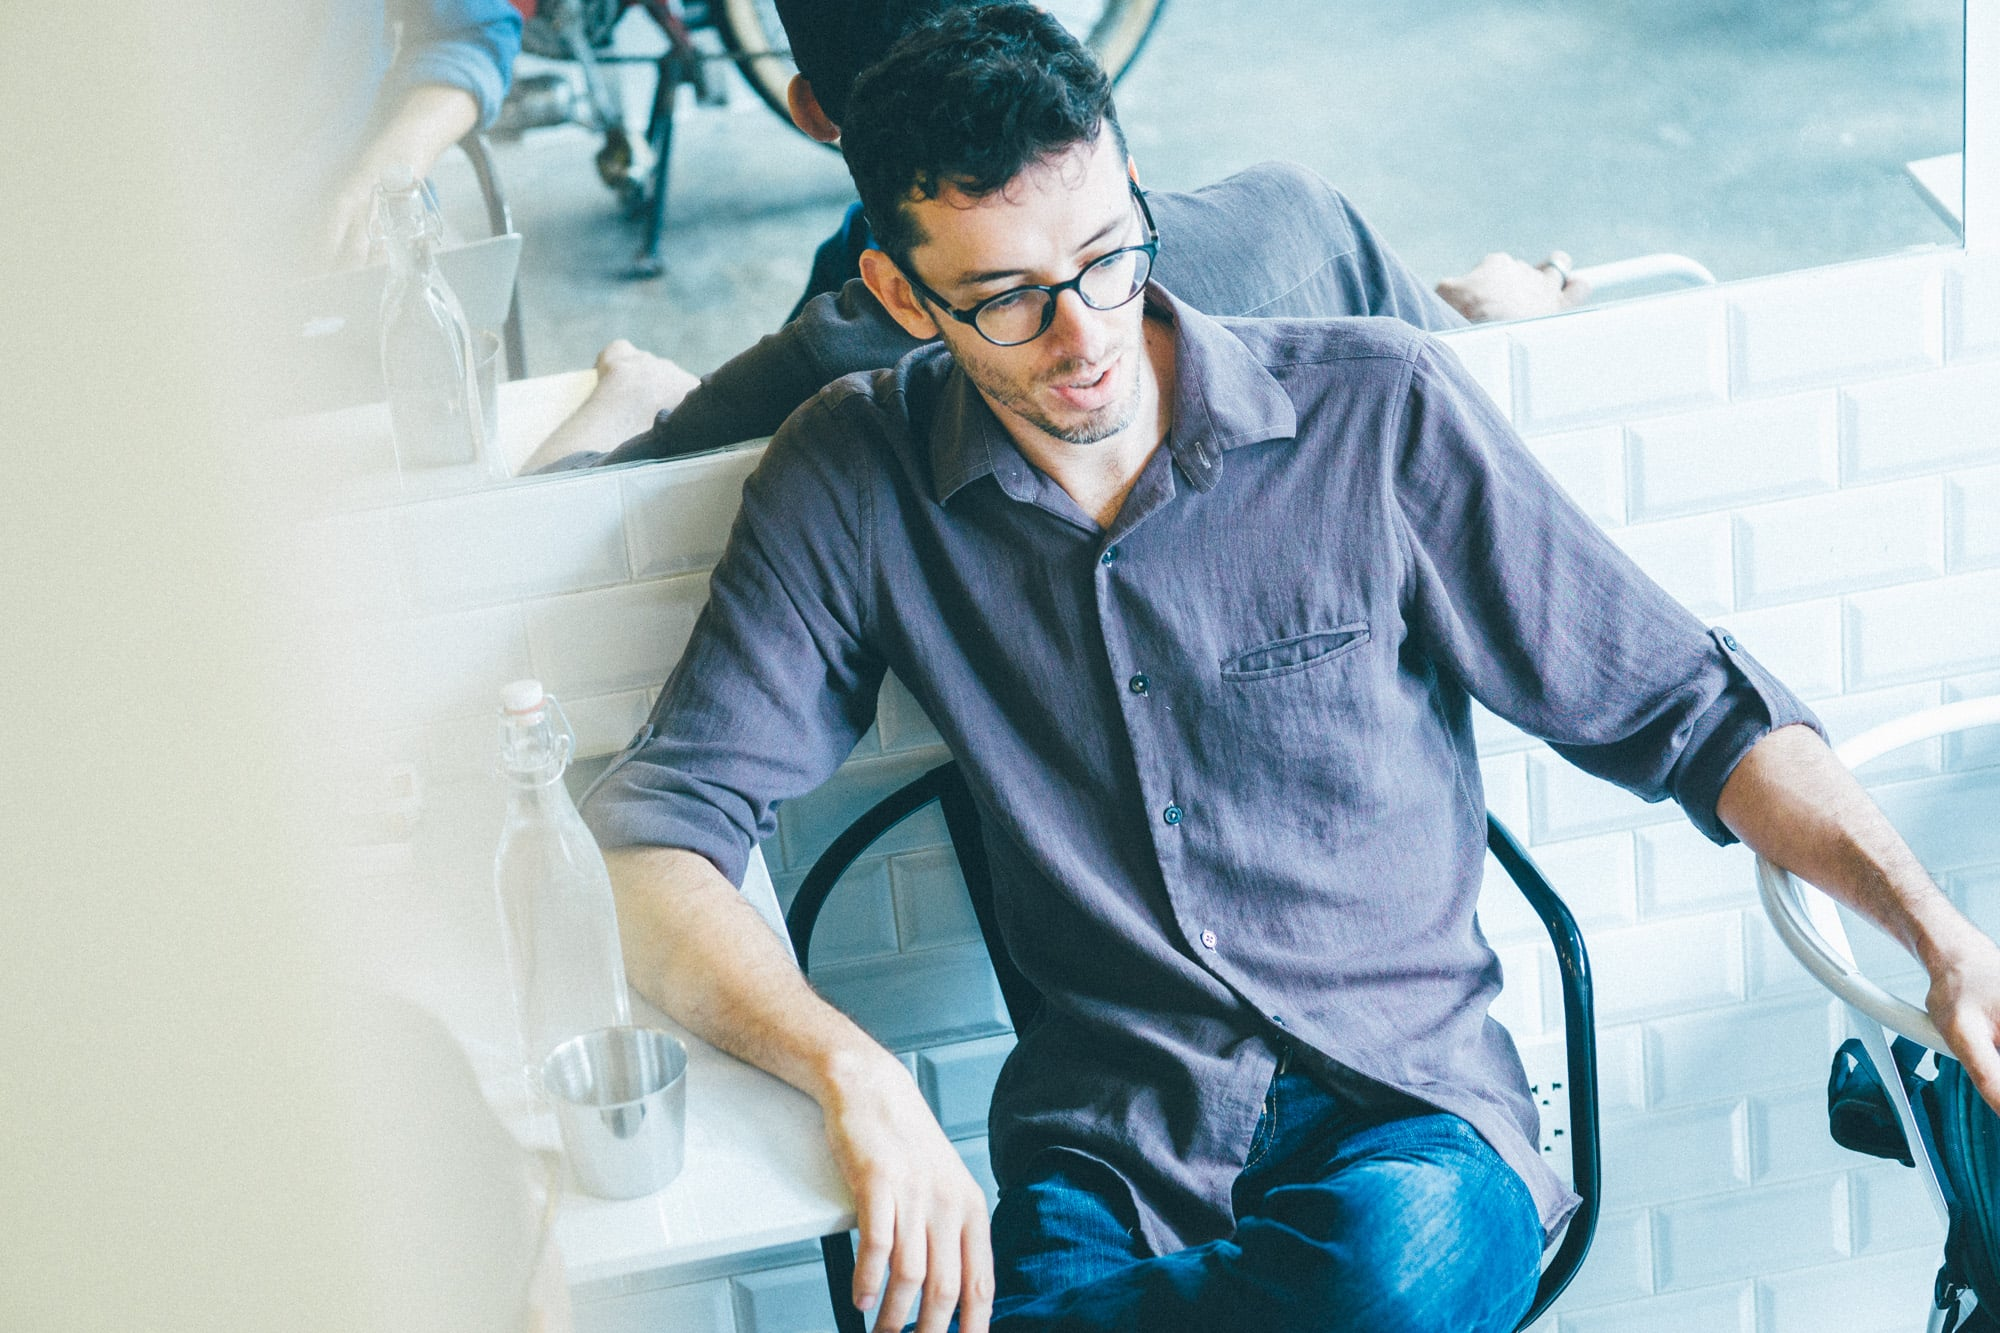 Lac Brewing Co: A Software Developer Turned Craft Beer Brewer